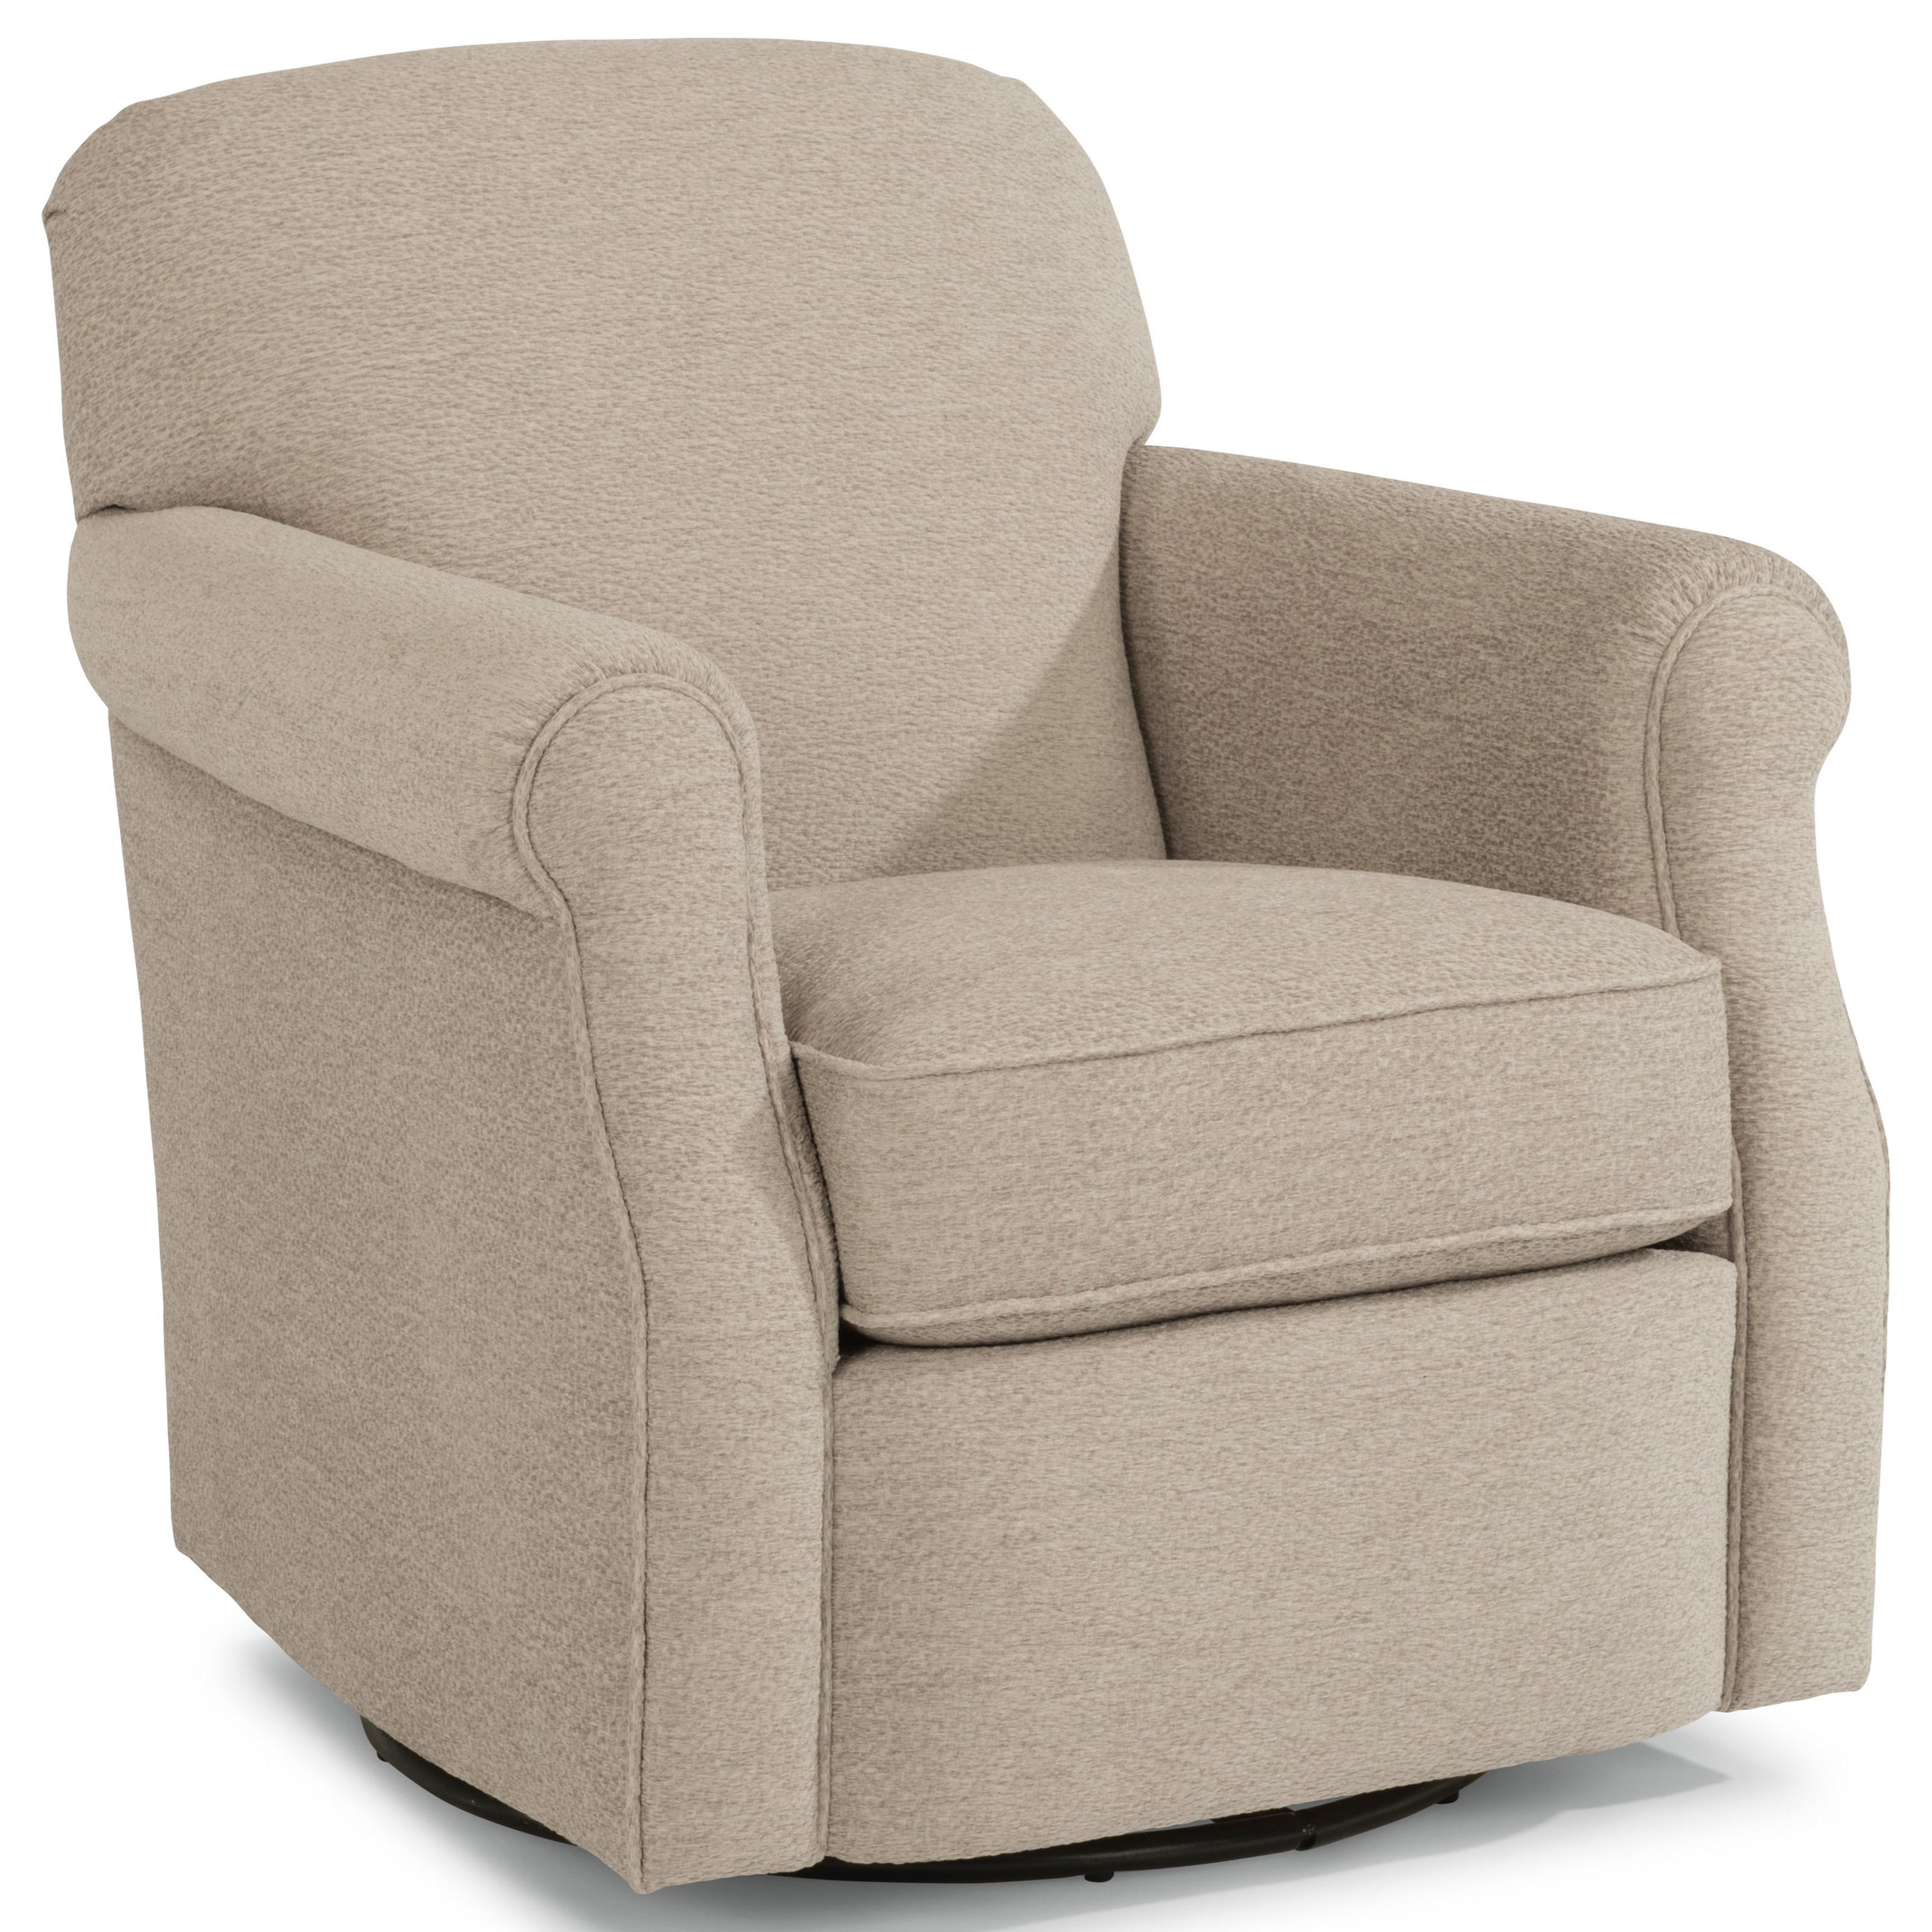 Flexsteel Mabel Casual Swivel Chair With Rolled Arms